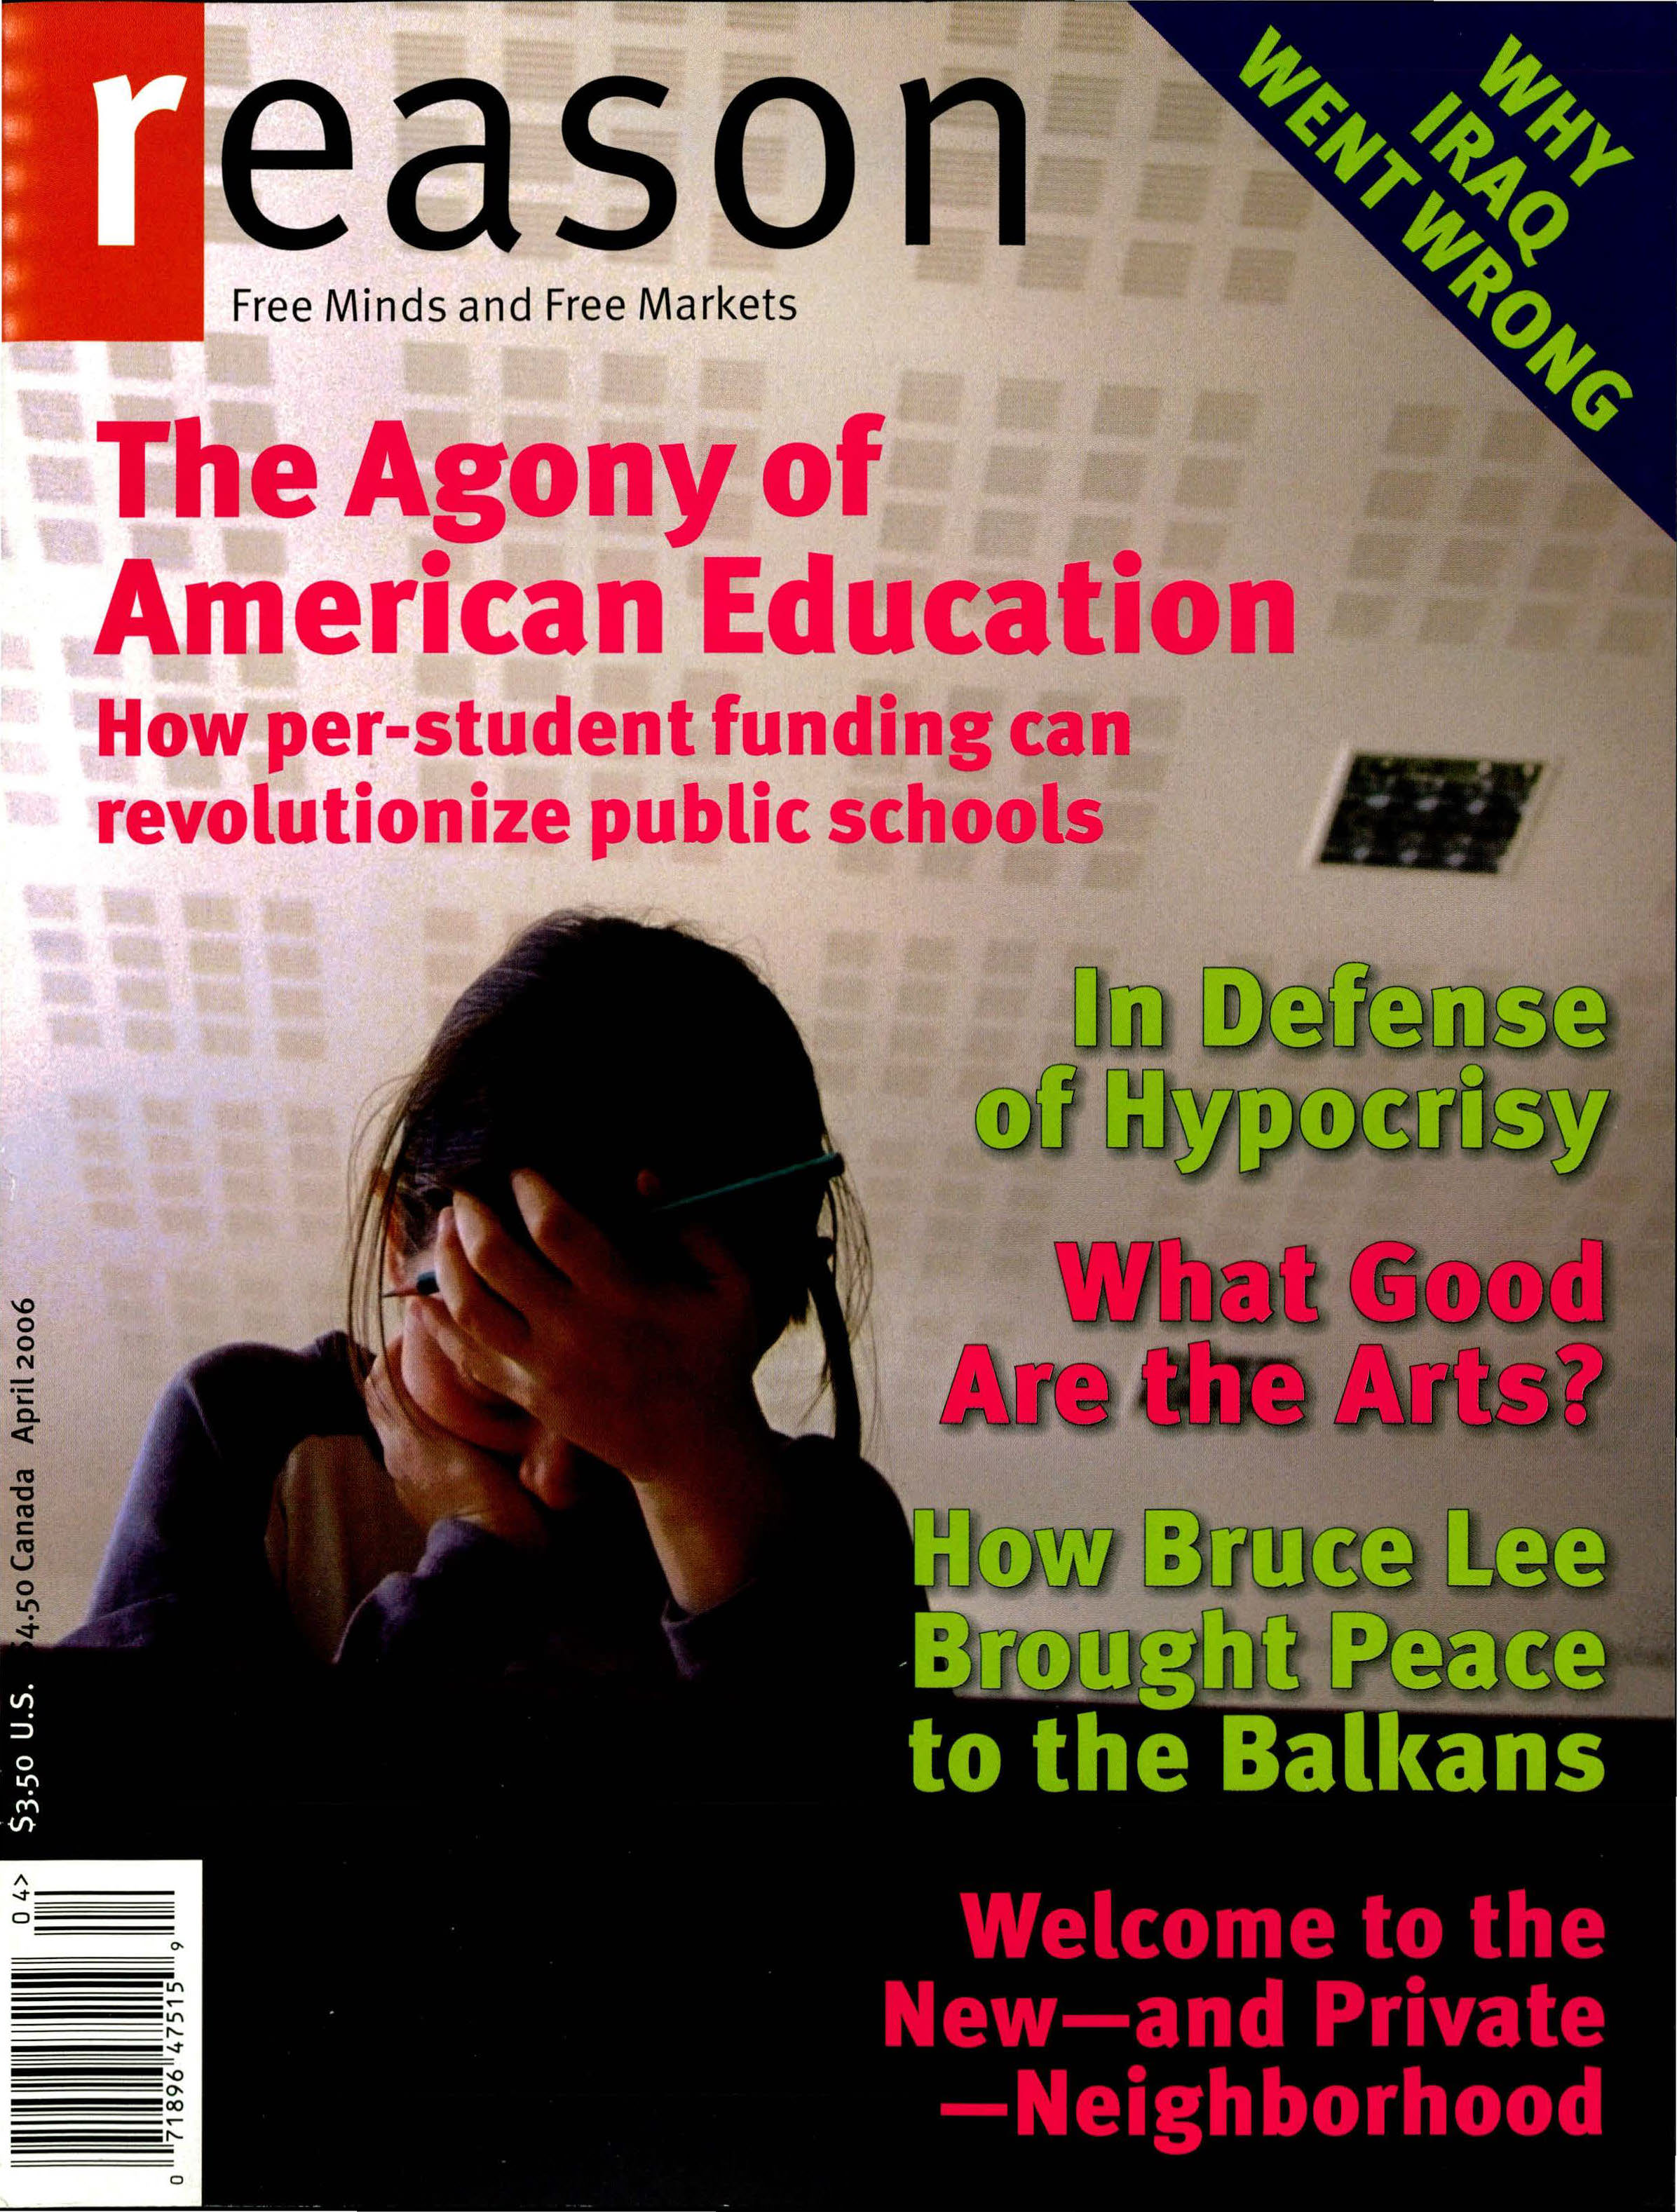 Reason Magazine, April 2006 cover image